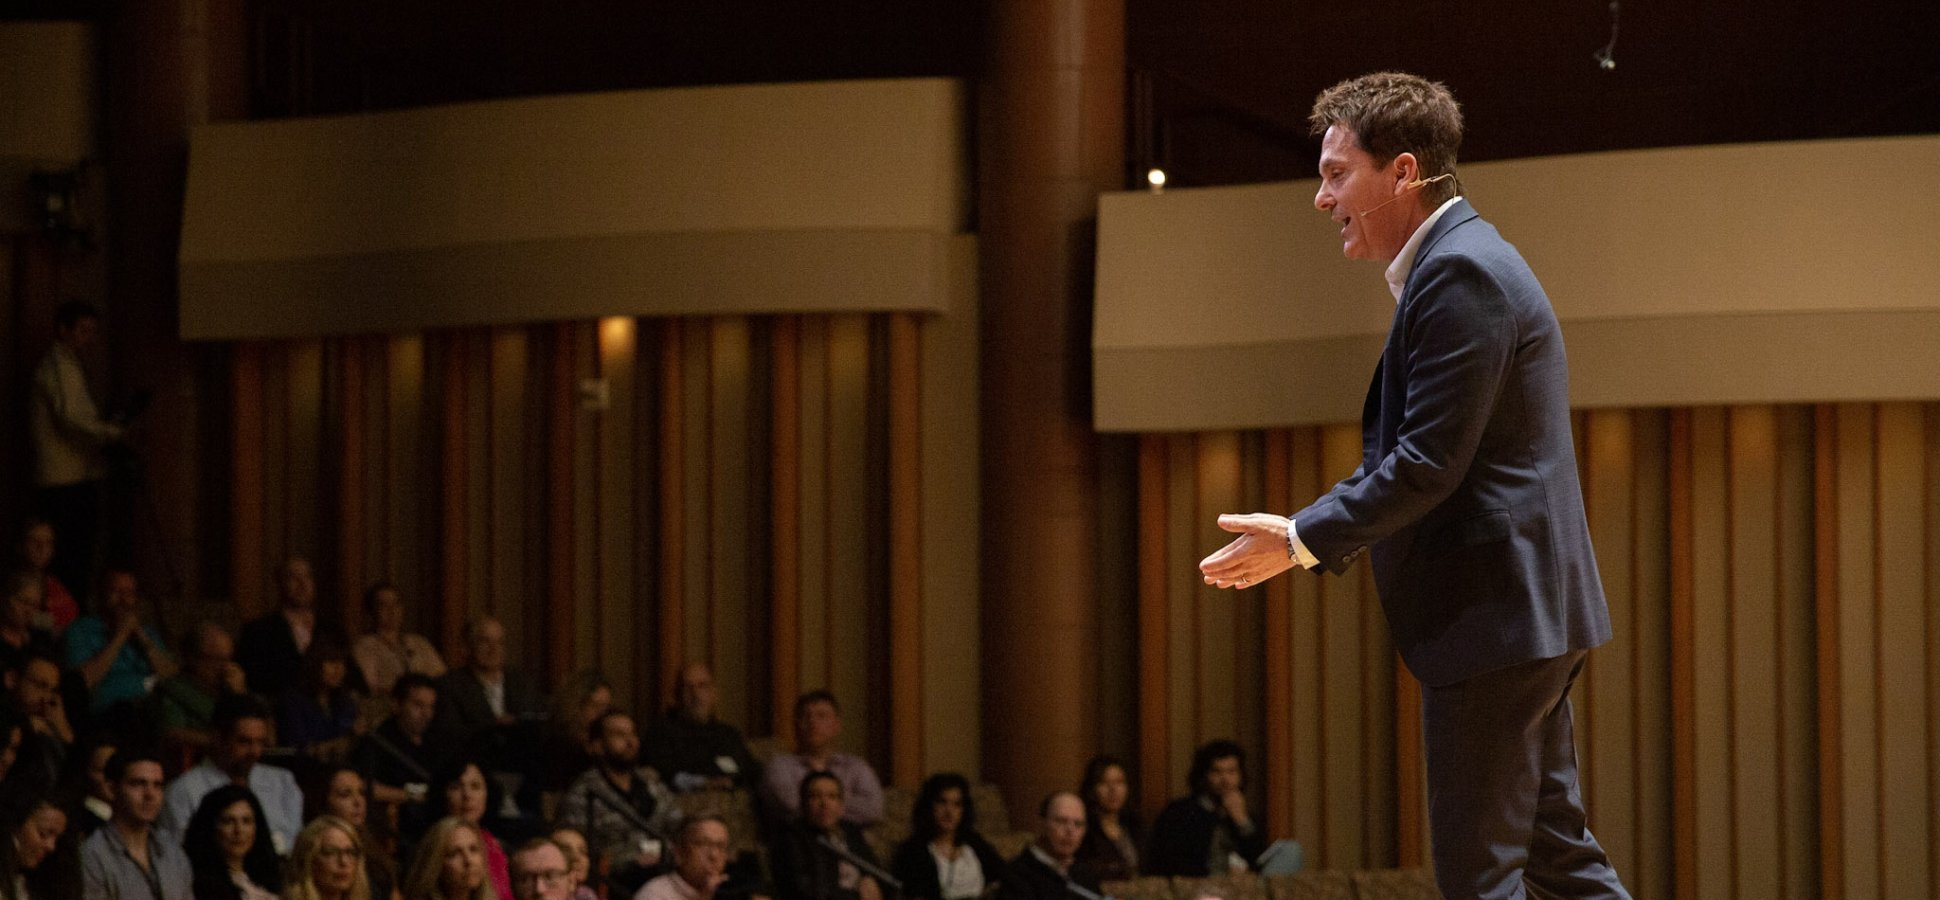 A Top Vocal Coach Shares His Personal Tips for Acing Your Next Presentation